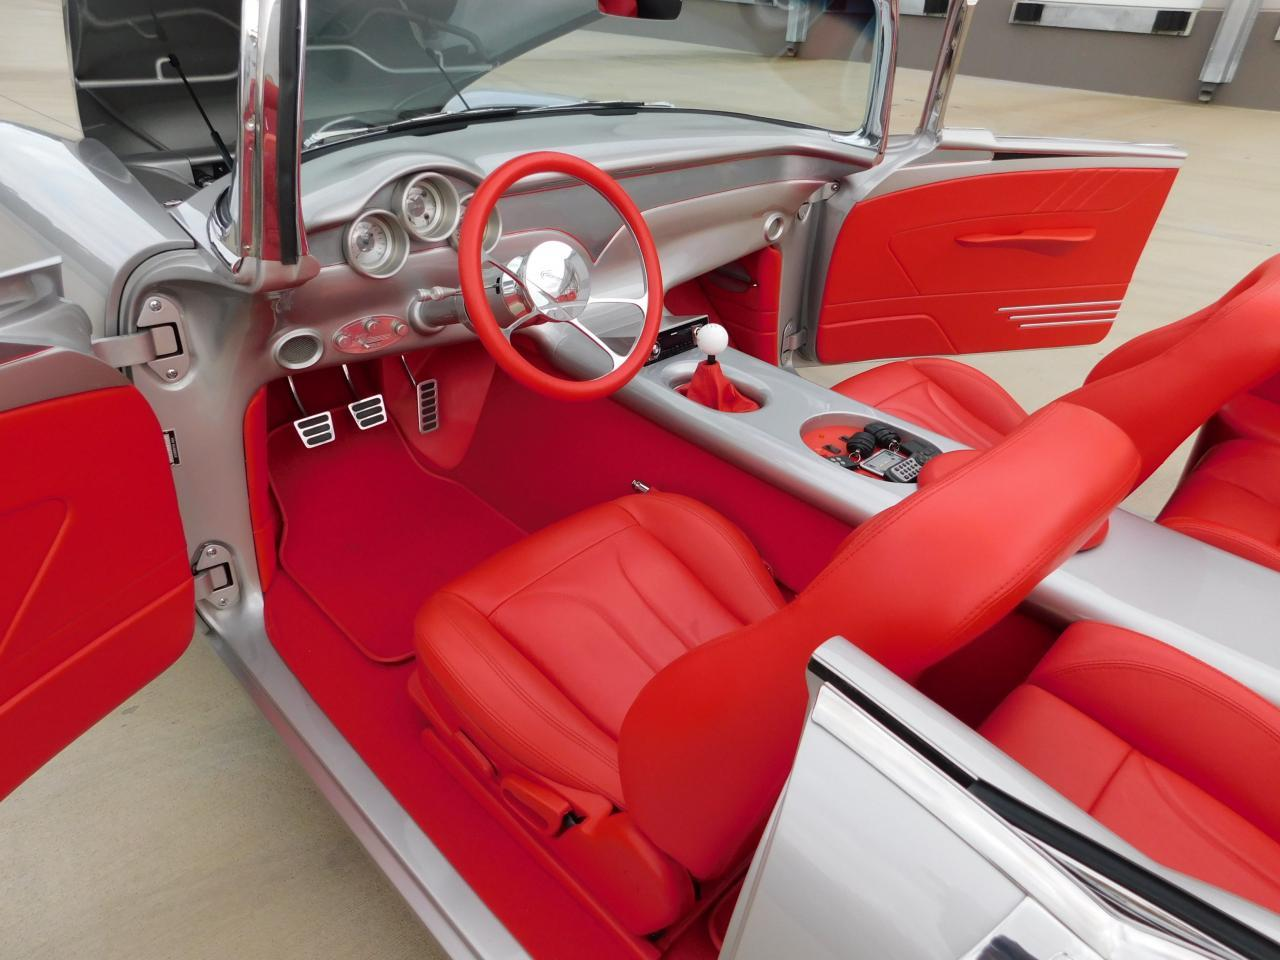 Large Picture of Classic 1955 Chevrolet Bel Air located in Georgia - $199,000.00 Offered by Gateway Classic Cars - Atlanta - MDI3